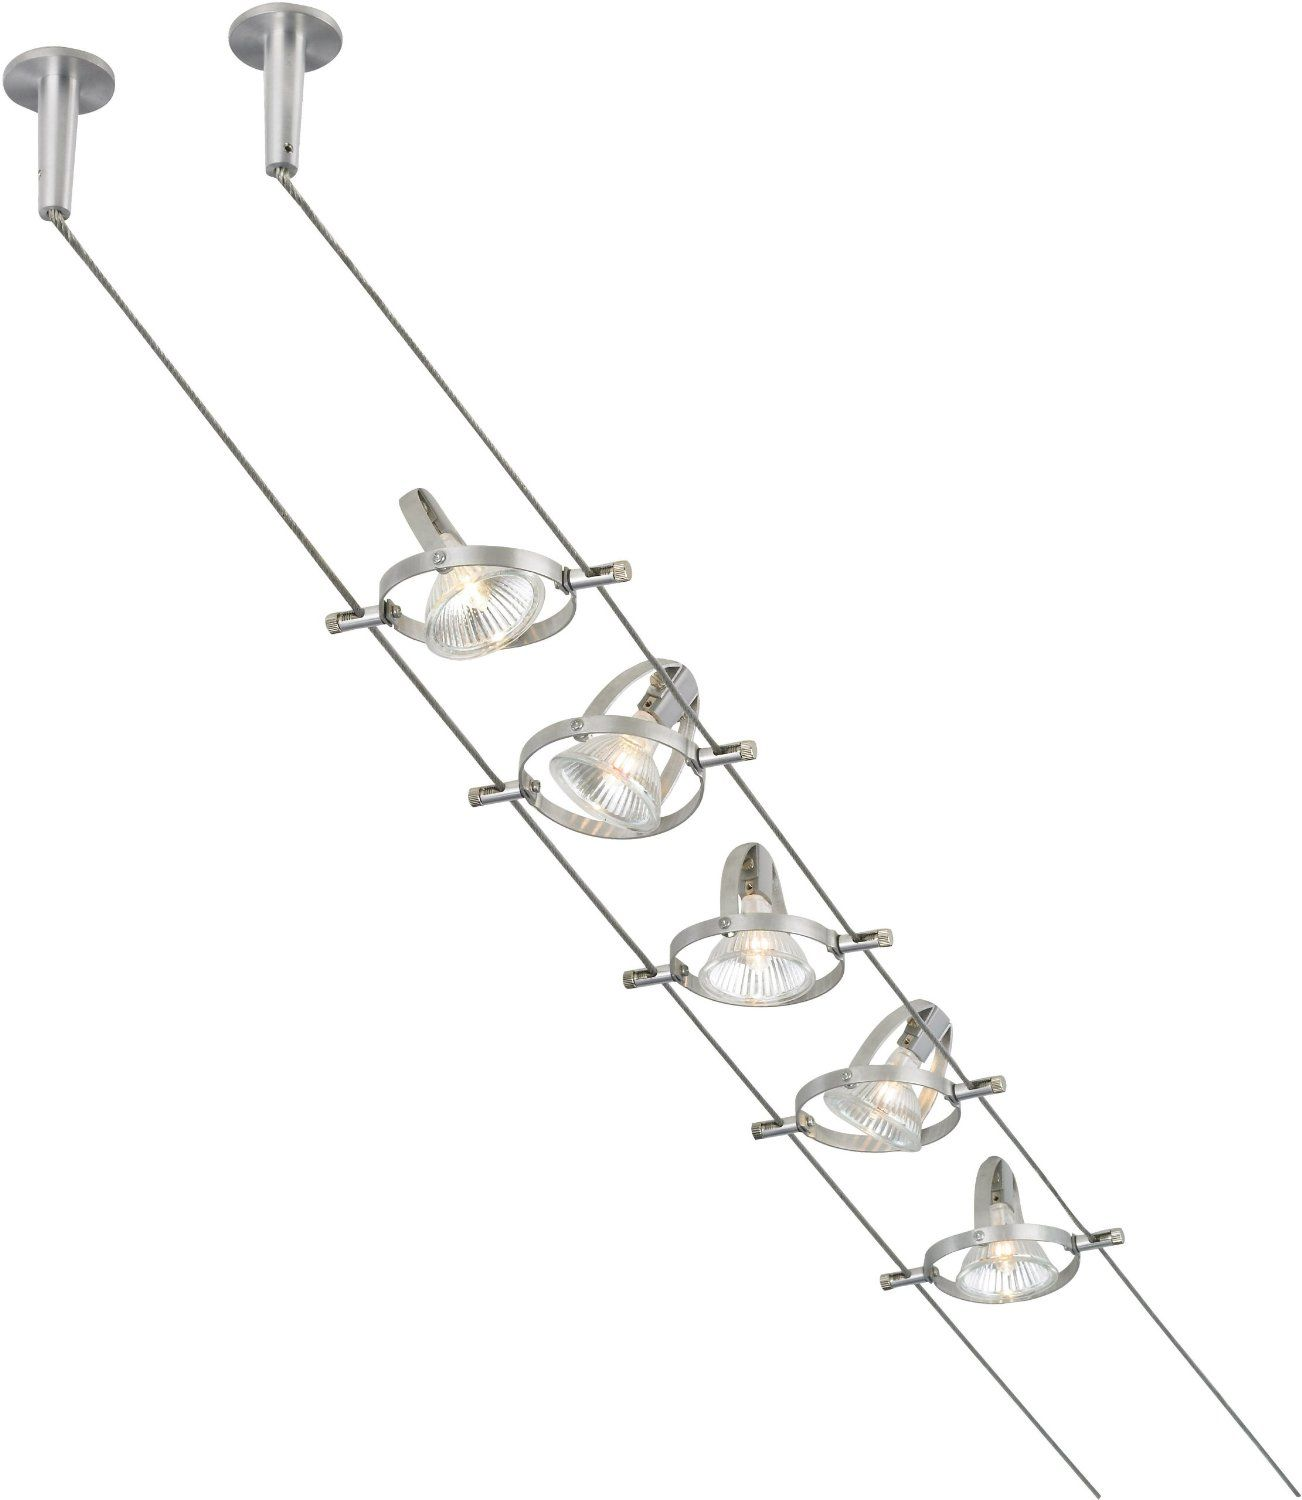 amazon track lighting. Track Lighting Rails. Amazon.com : Tiella 800cbl5pn 100w Surface Ele Lv Transformer, Amazon